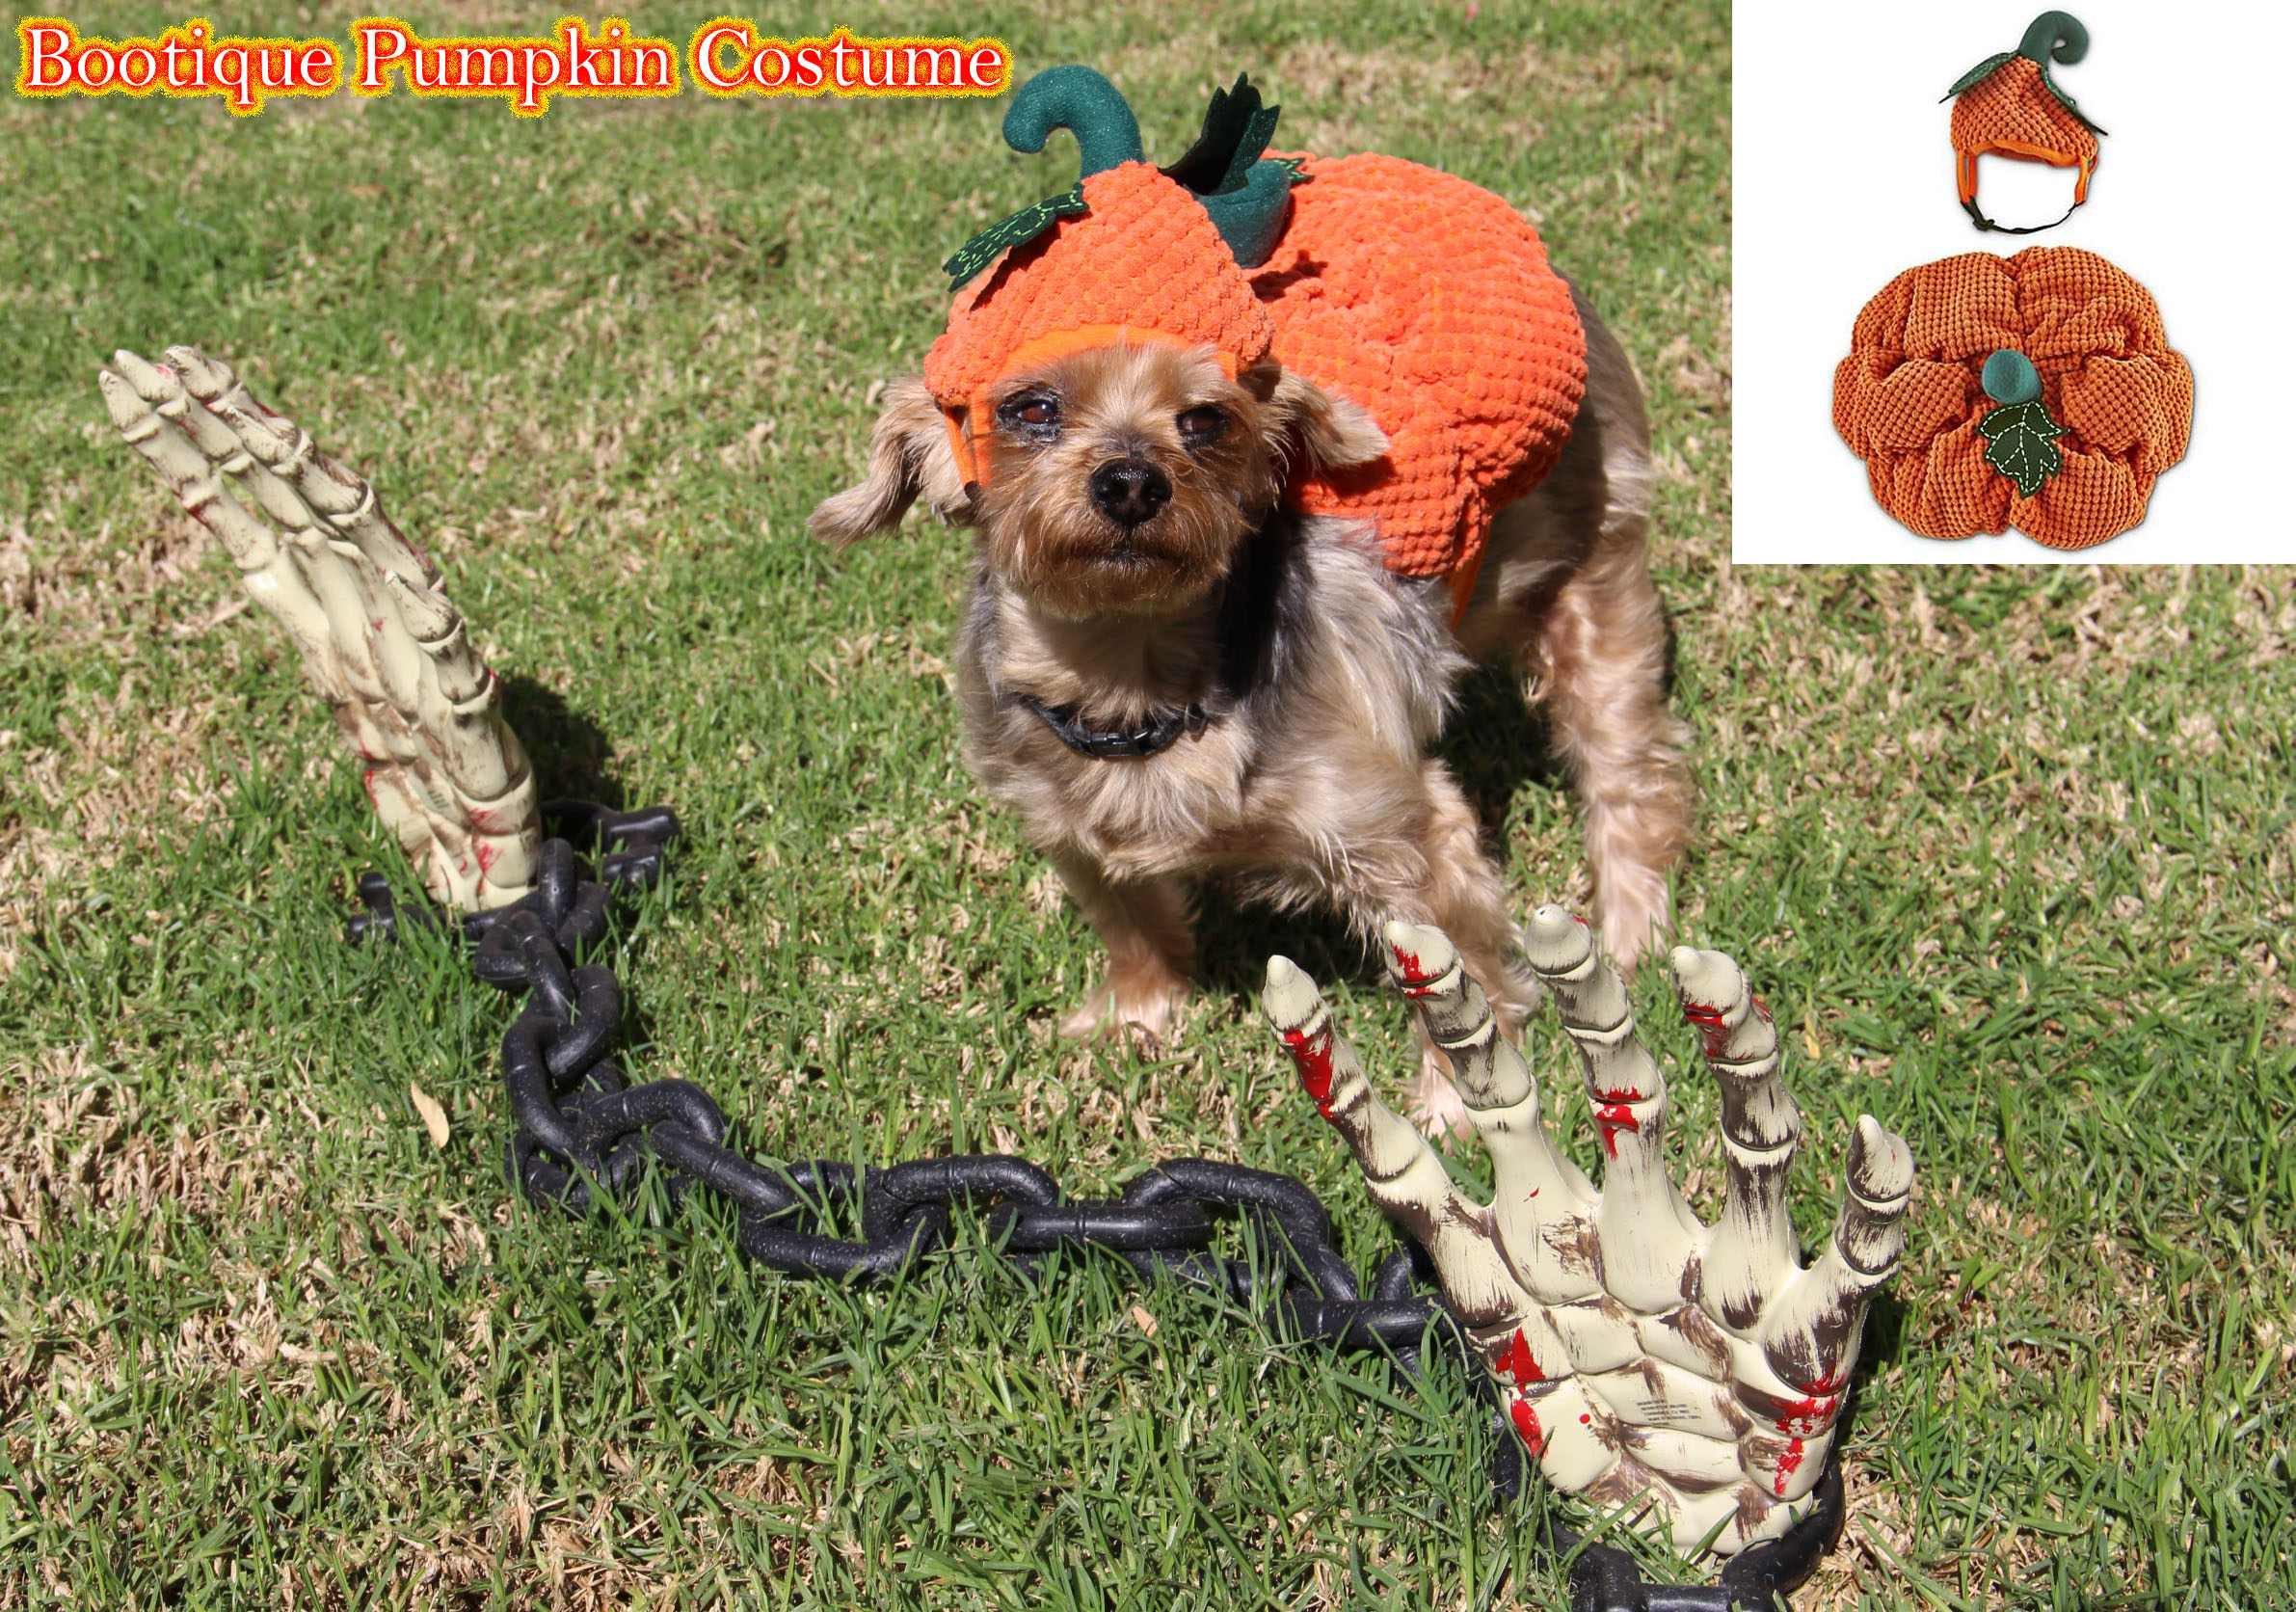 petco, dog, pumpkin costume